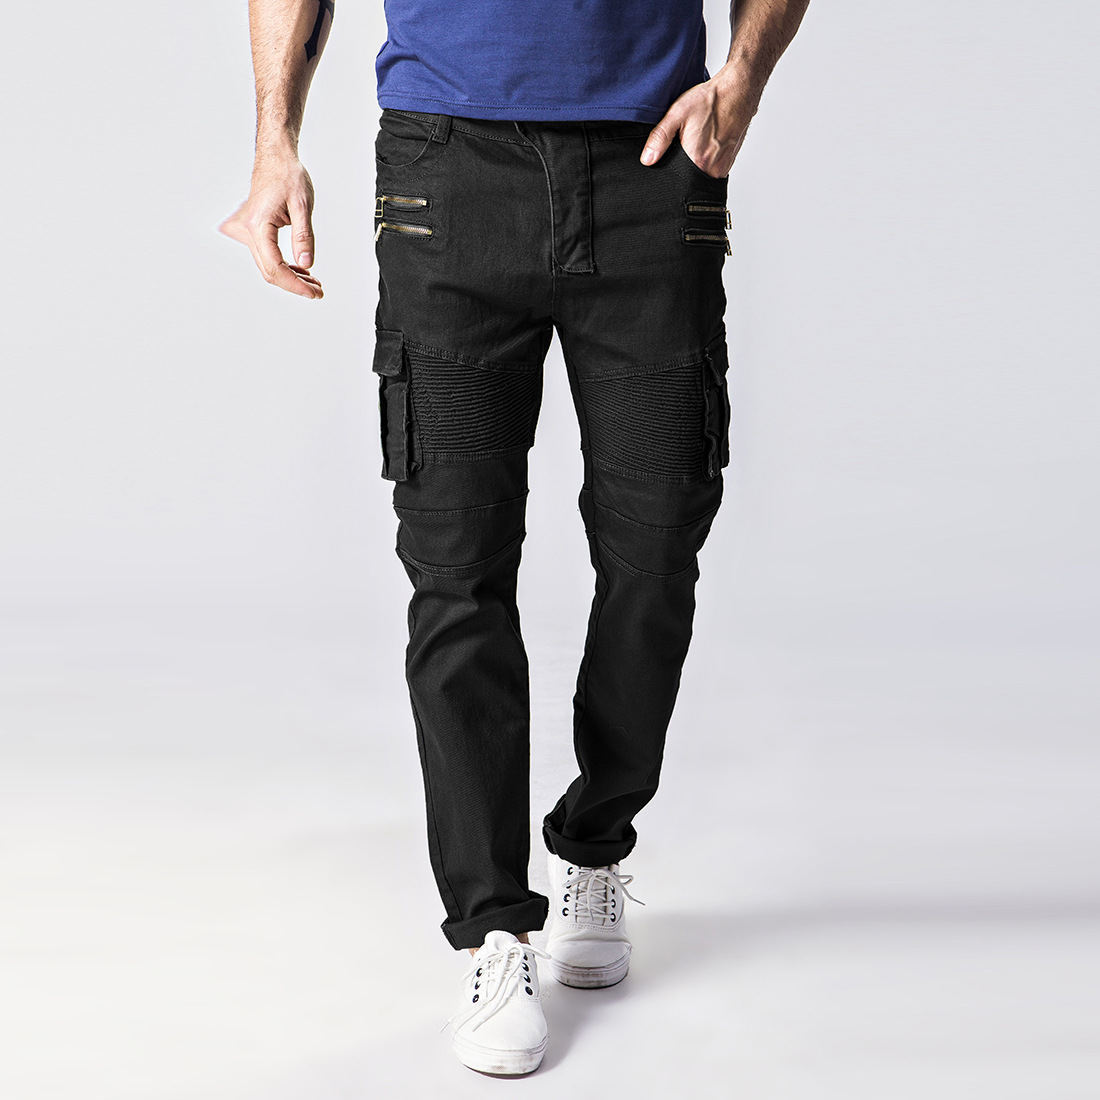 Men Jeans Brand Casual Thin Summer Straight Slim Jeans Stretch Denim Pants Trousers Classic Cowboys Young Man Streetwear